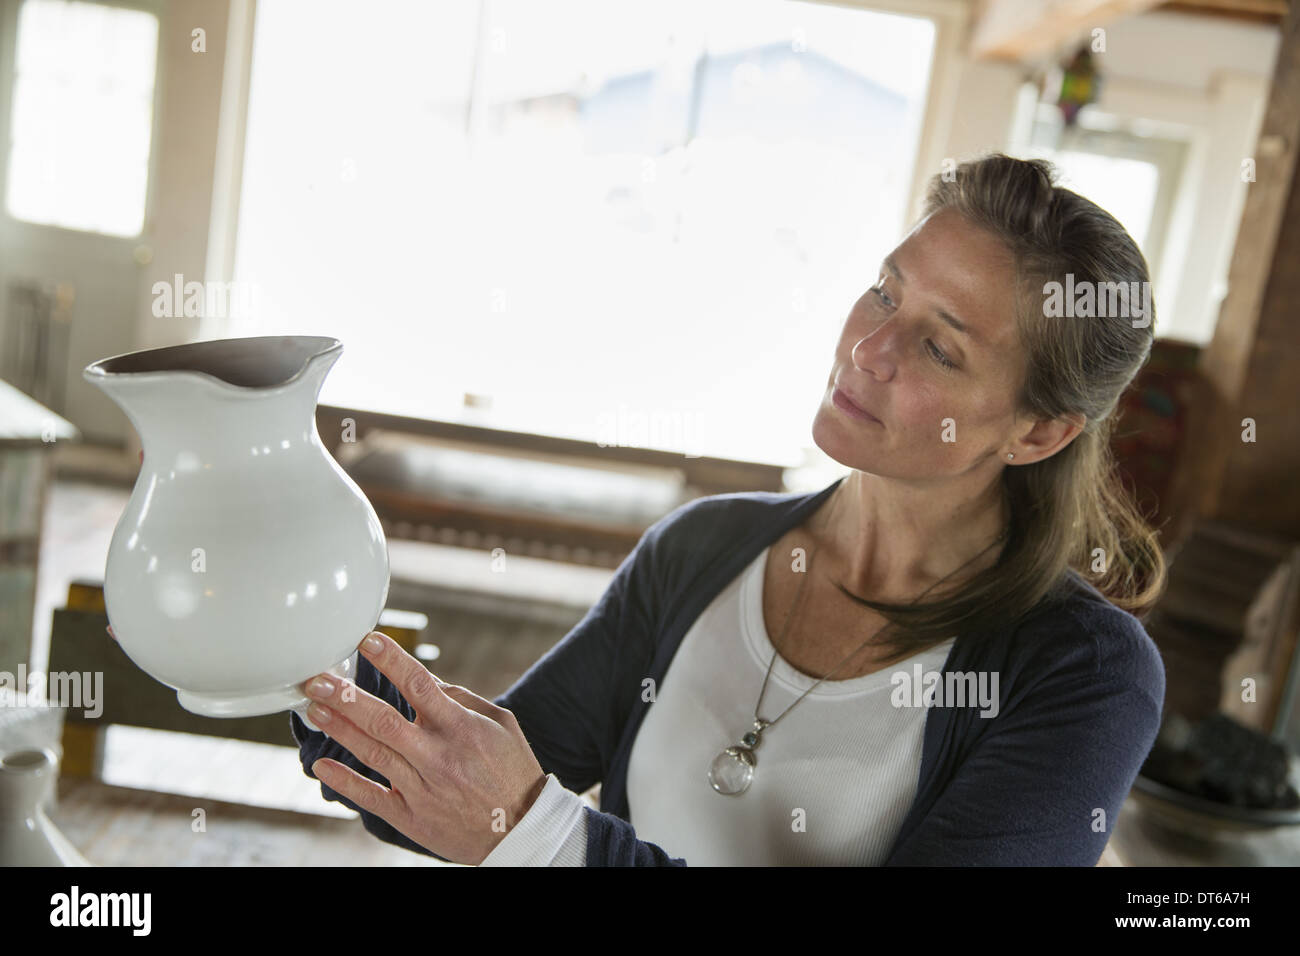 A woman holding a white pottery jug in an antique goods and furniture store. - Stock Image